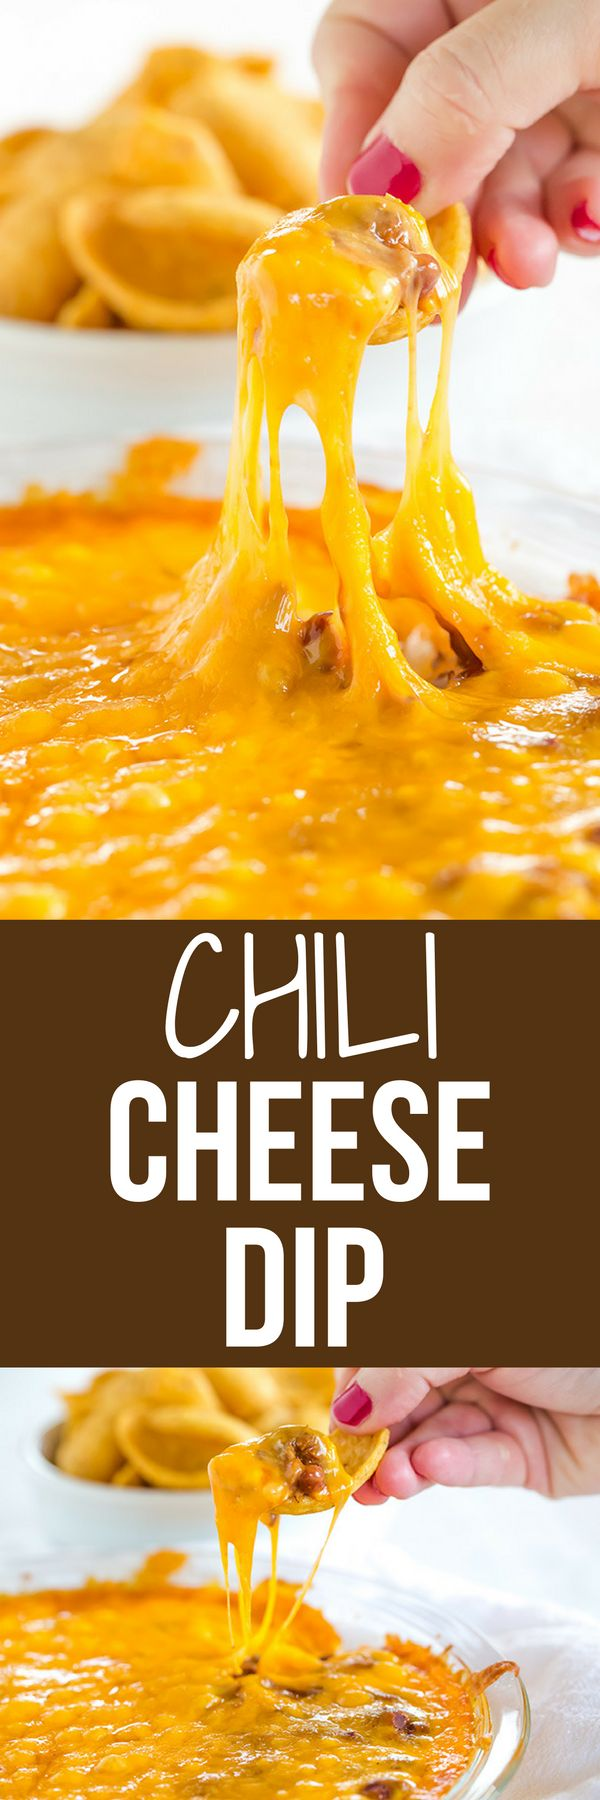 This Cheesy Chili Dip is incredibly easy and perfect for parties, cookouts or watching the game. Only THREE ingredients!!